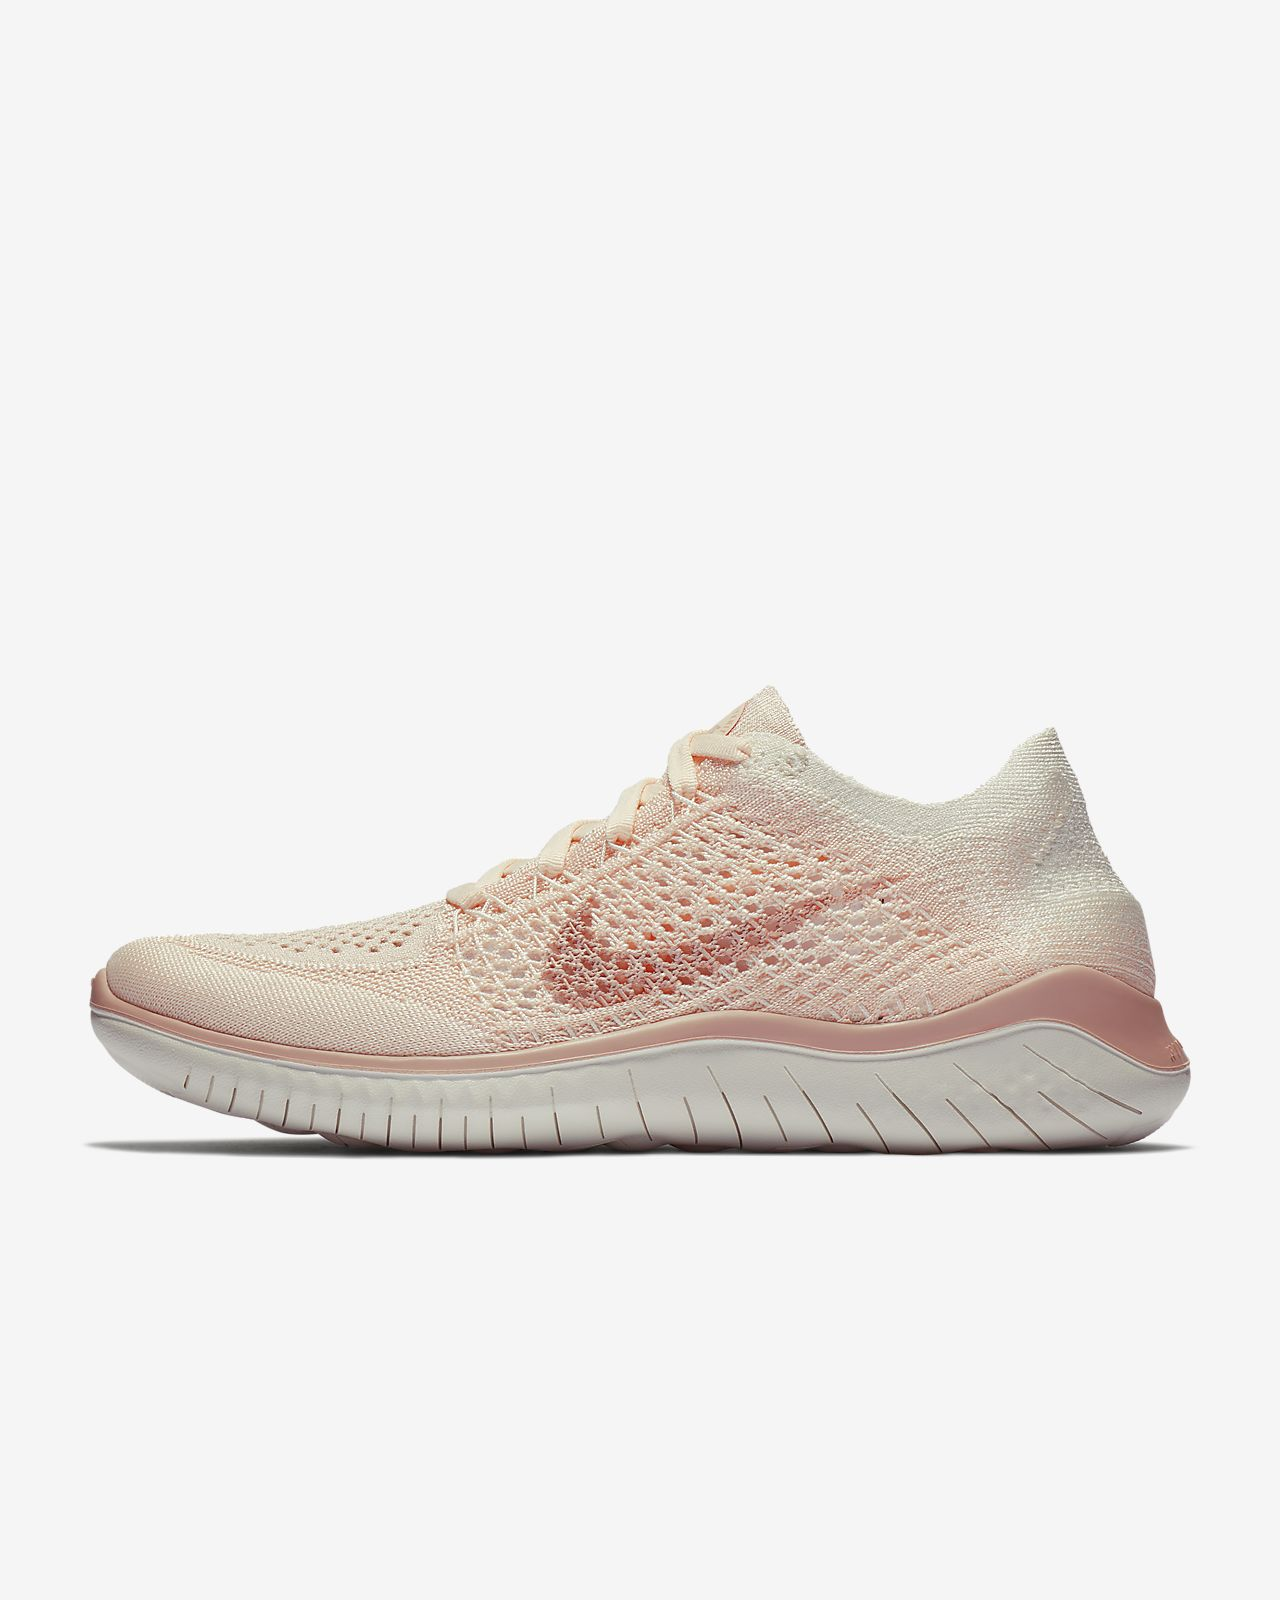 best sneakers 5db03 acb13 Women s Running Shoe. Nike Free RN Flyknit 2018